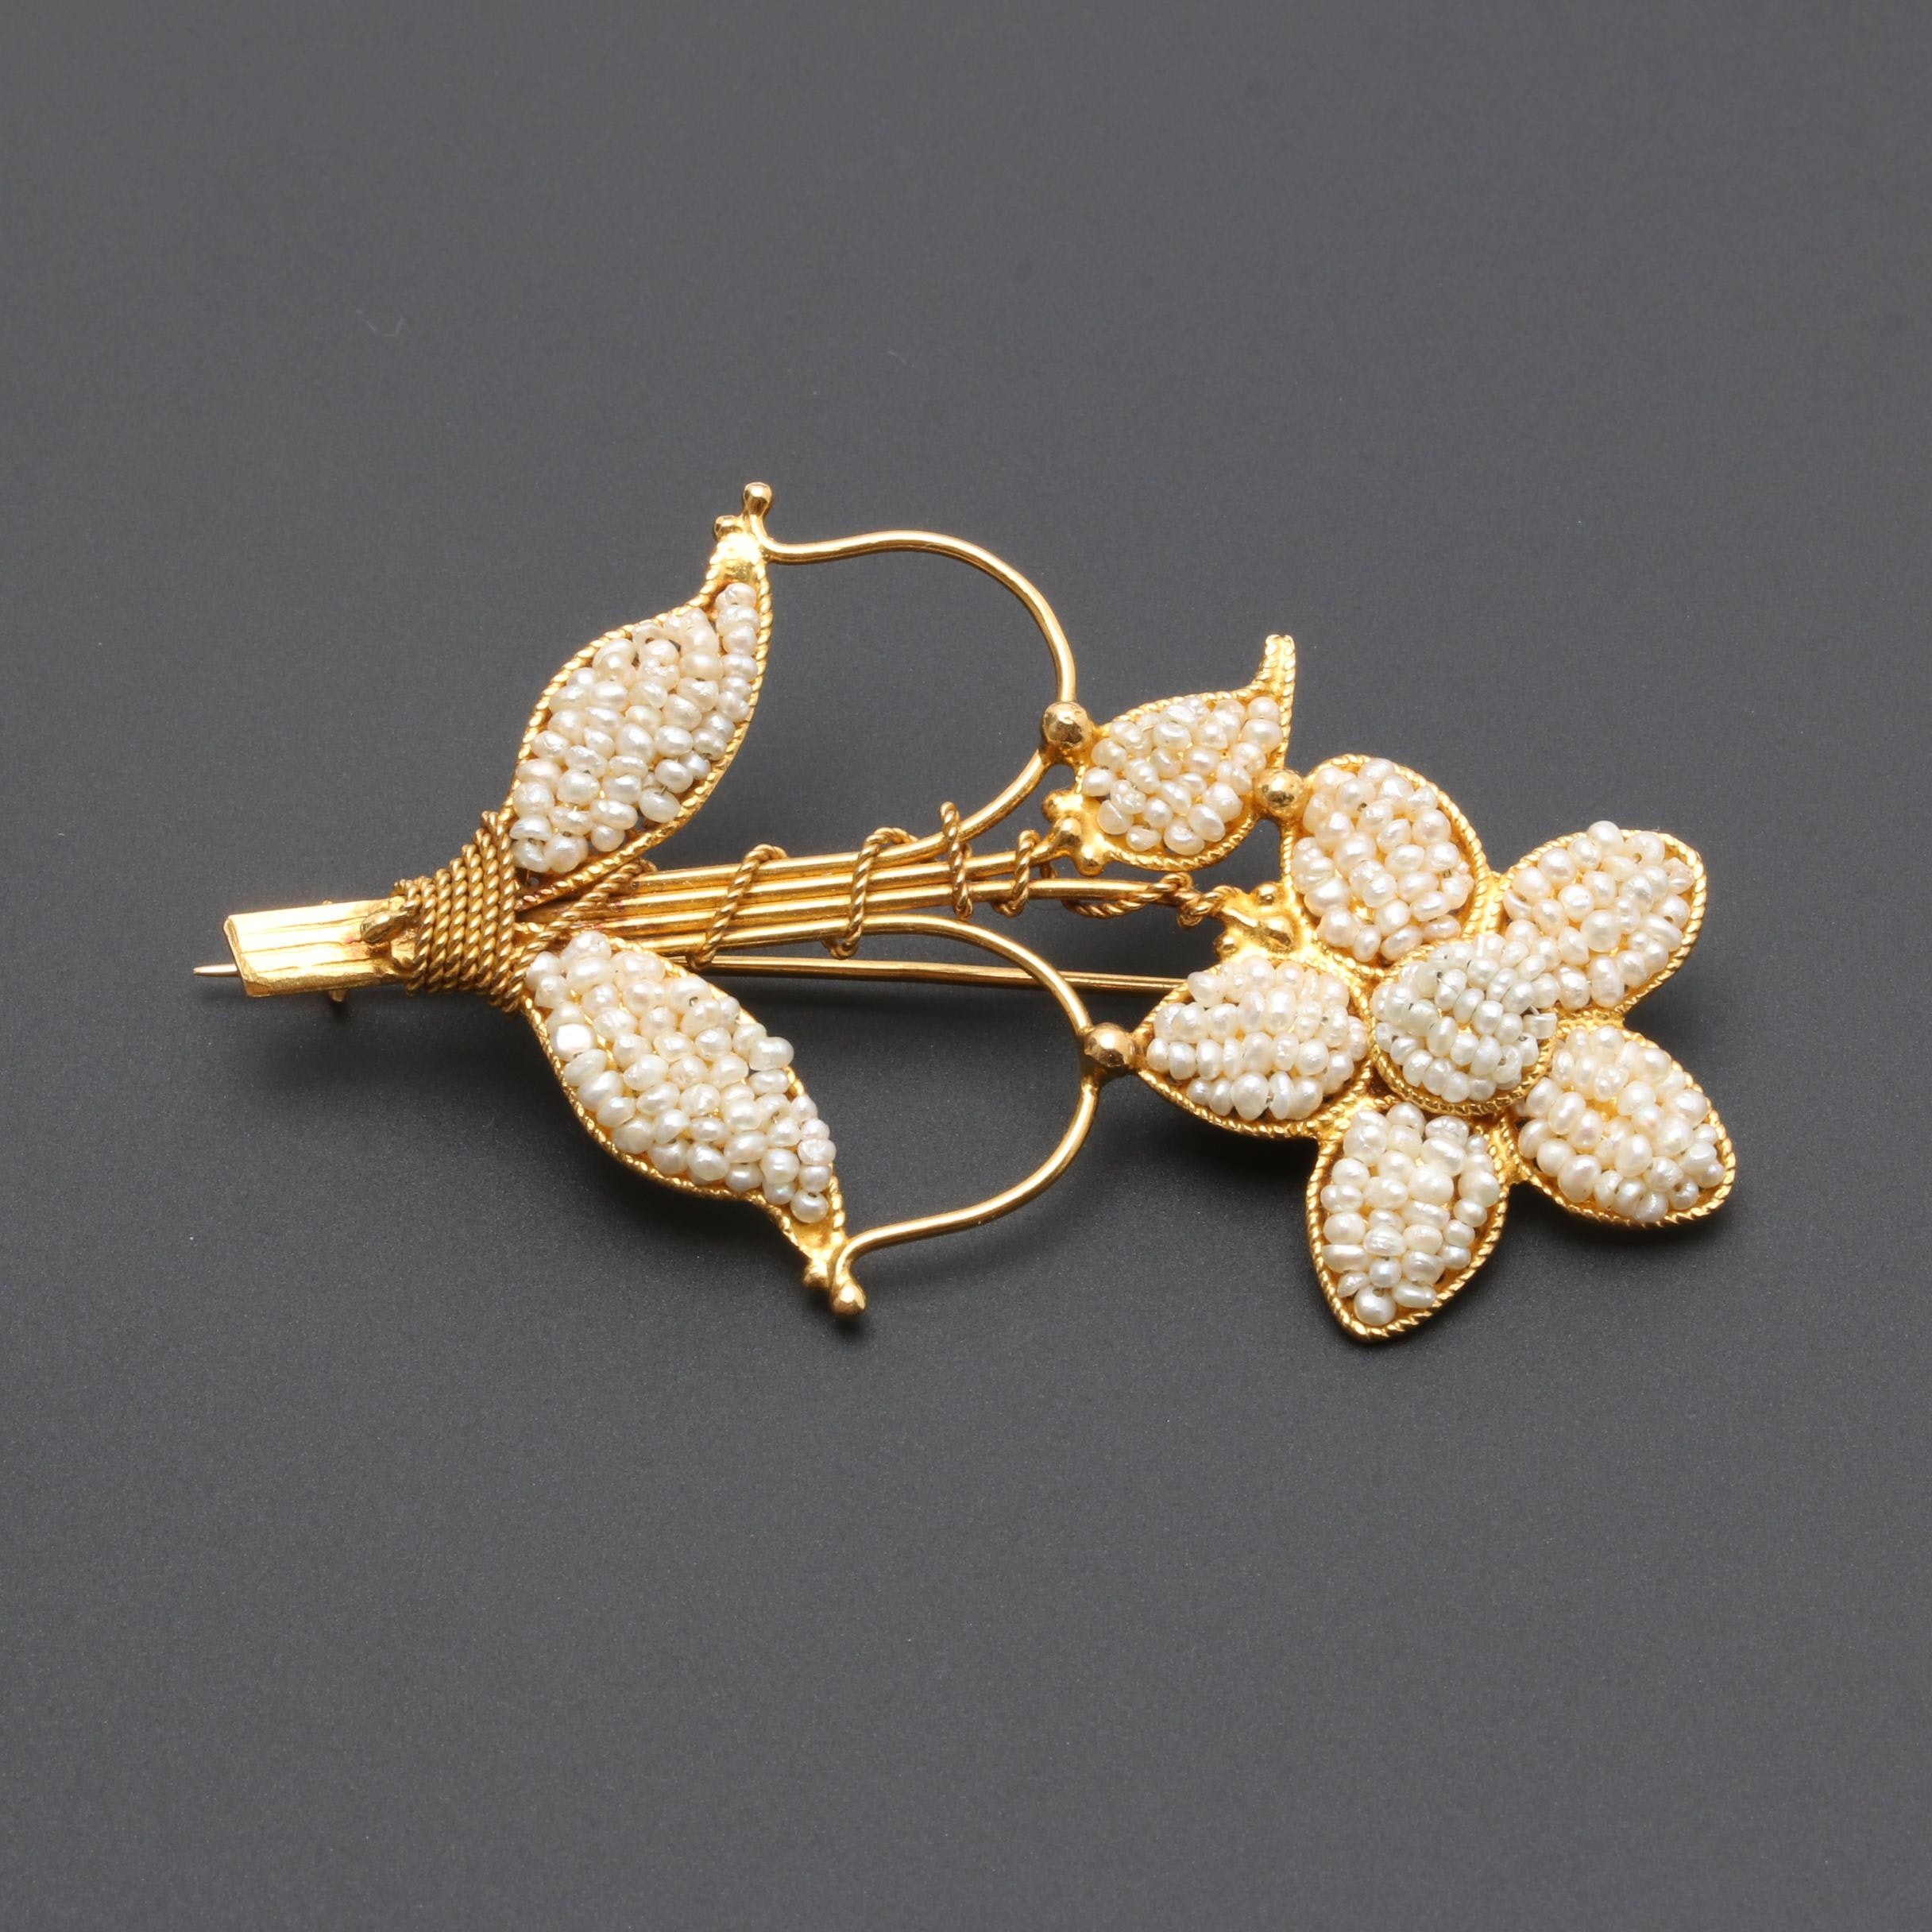 Antique 14K Yellow Gold Seed Pearl Flower Brooch